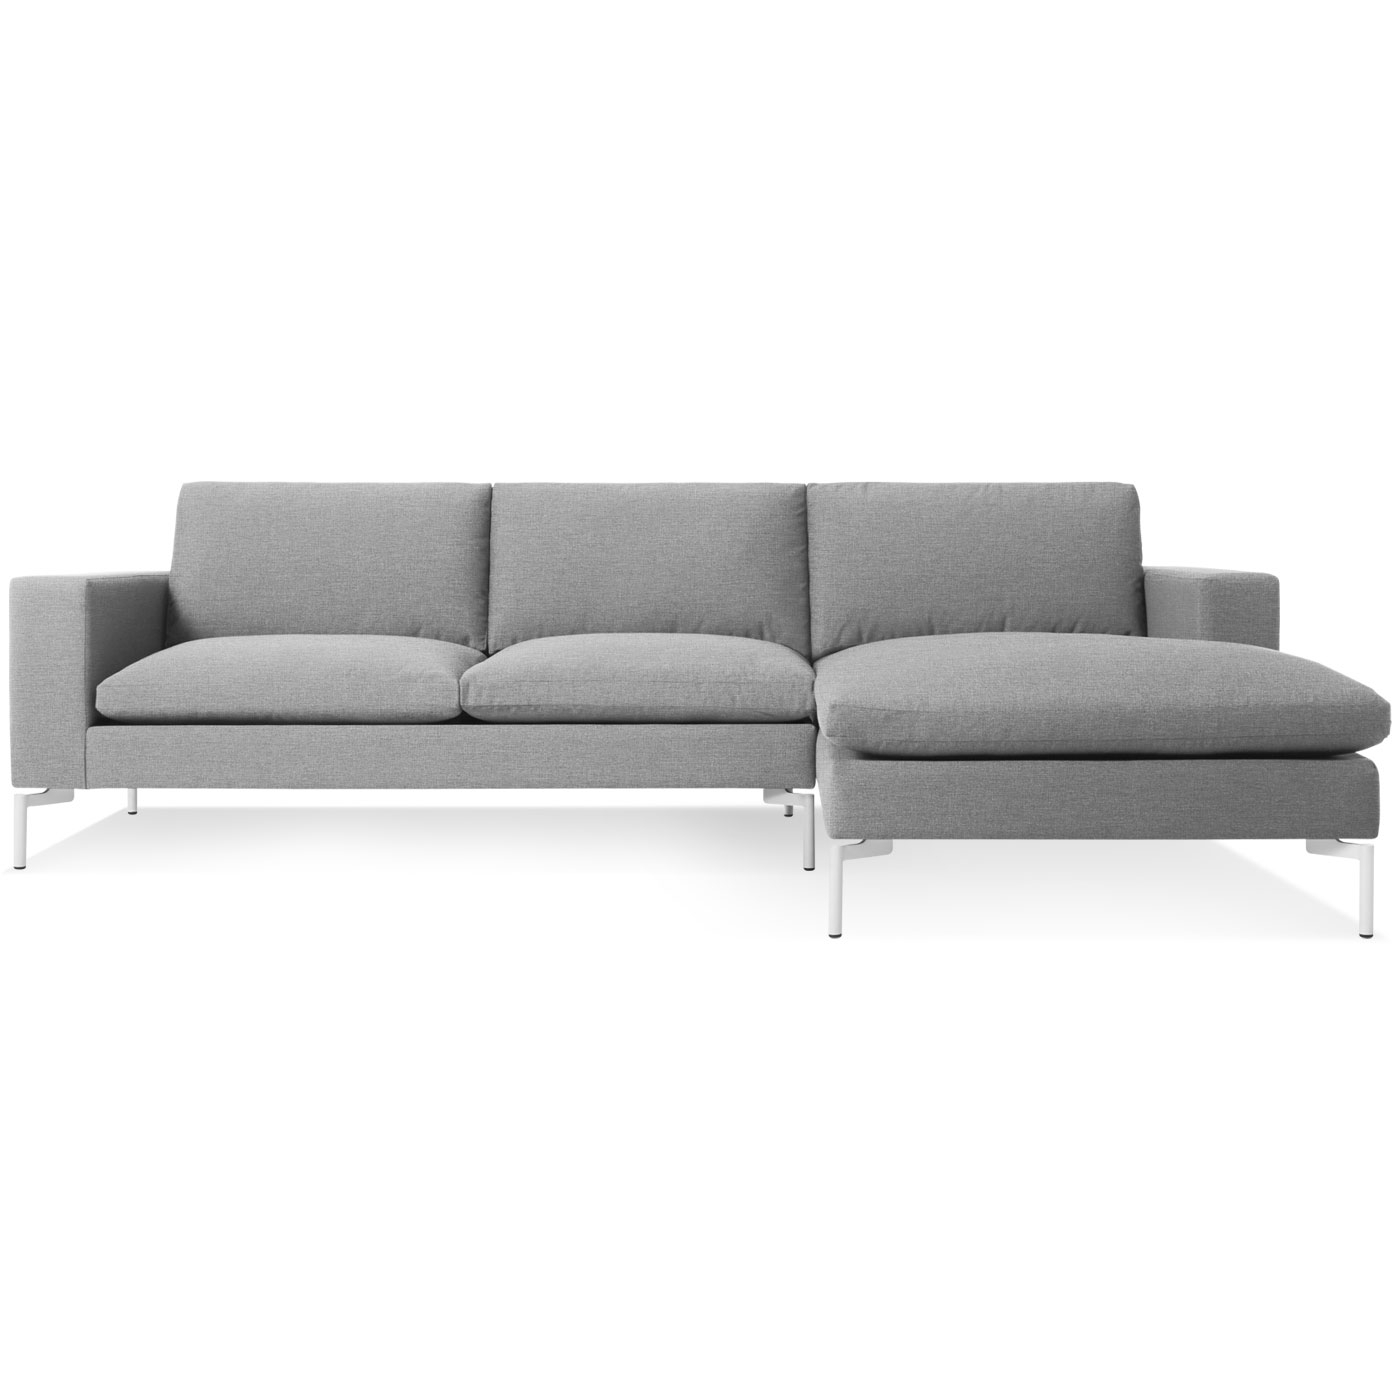 New Standard Modern Chaise Sofa - Left Chaise